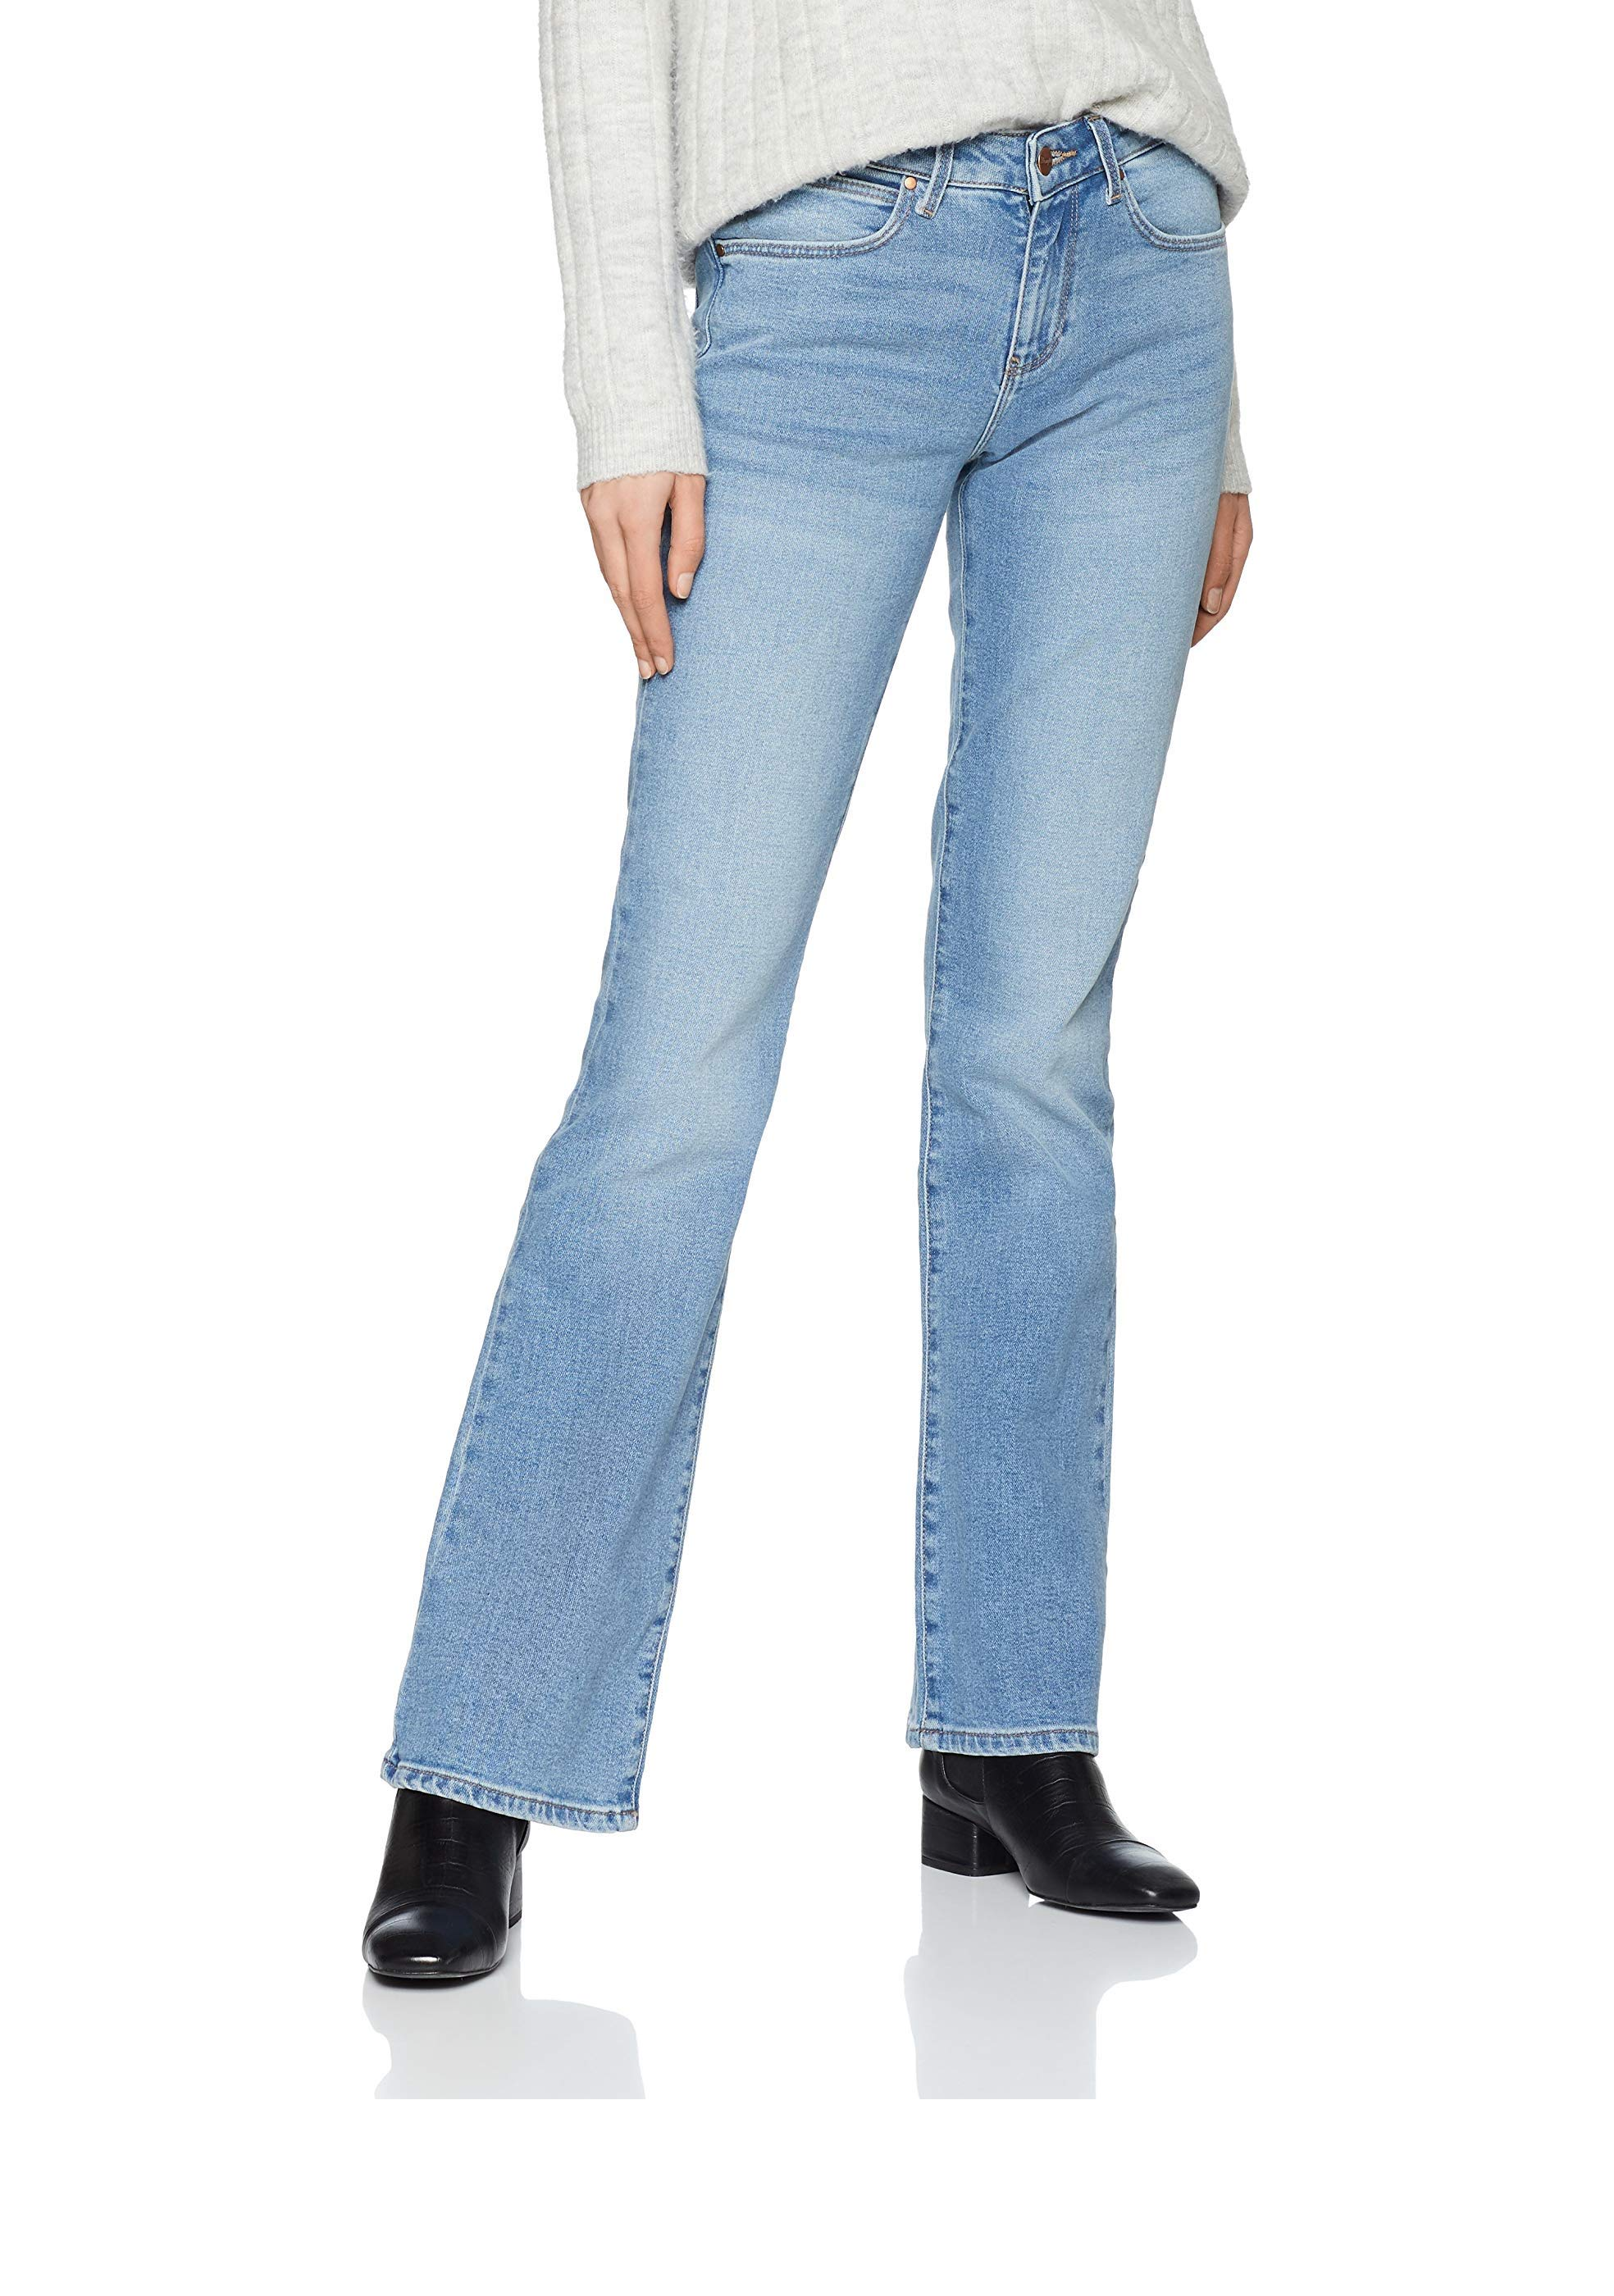 b21851f1 Women's Jeans: Amazon.co.uk